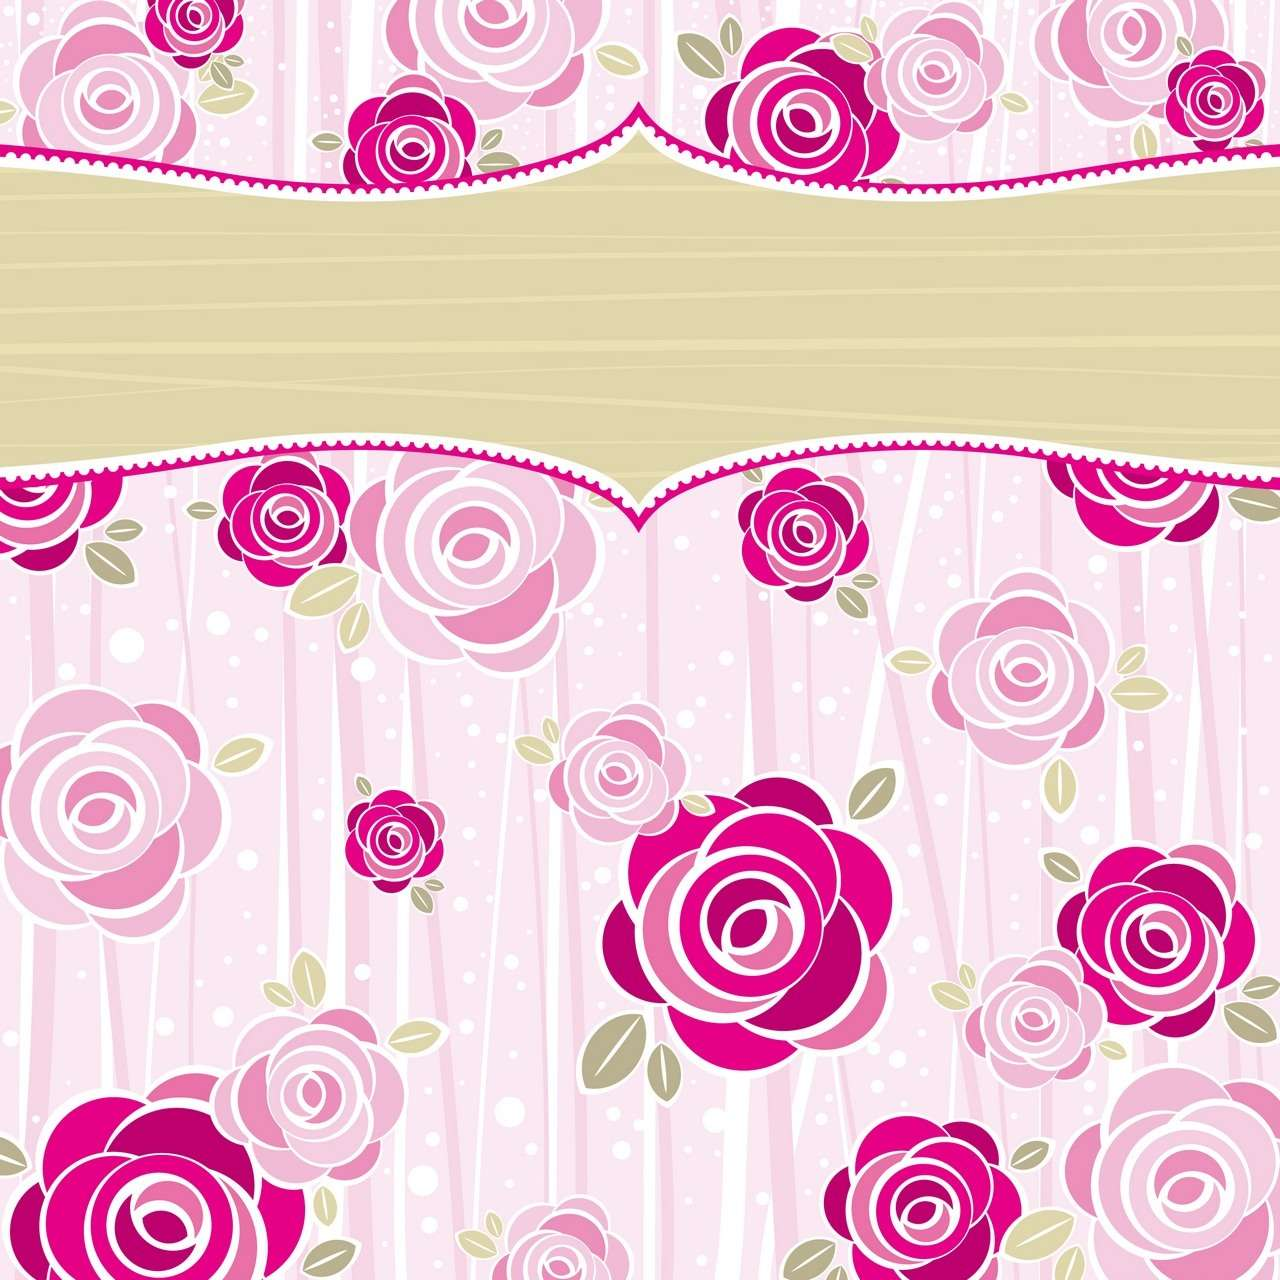 Flower Background, Frame 10 png